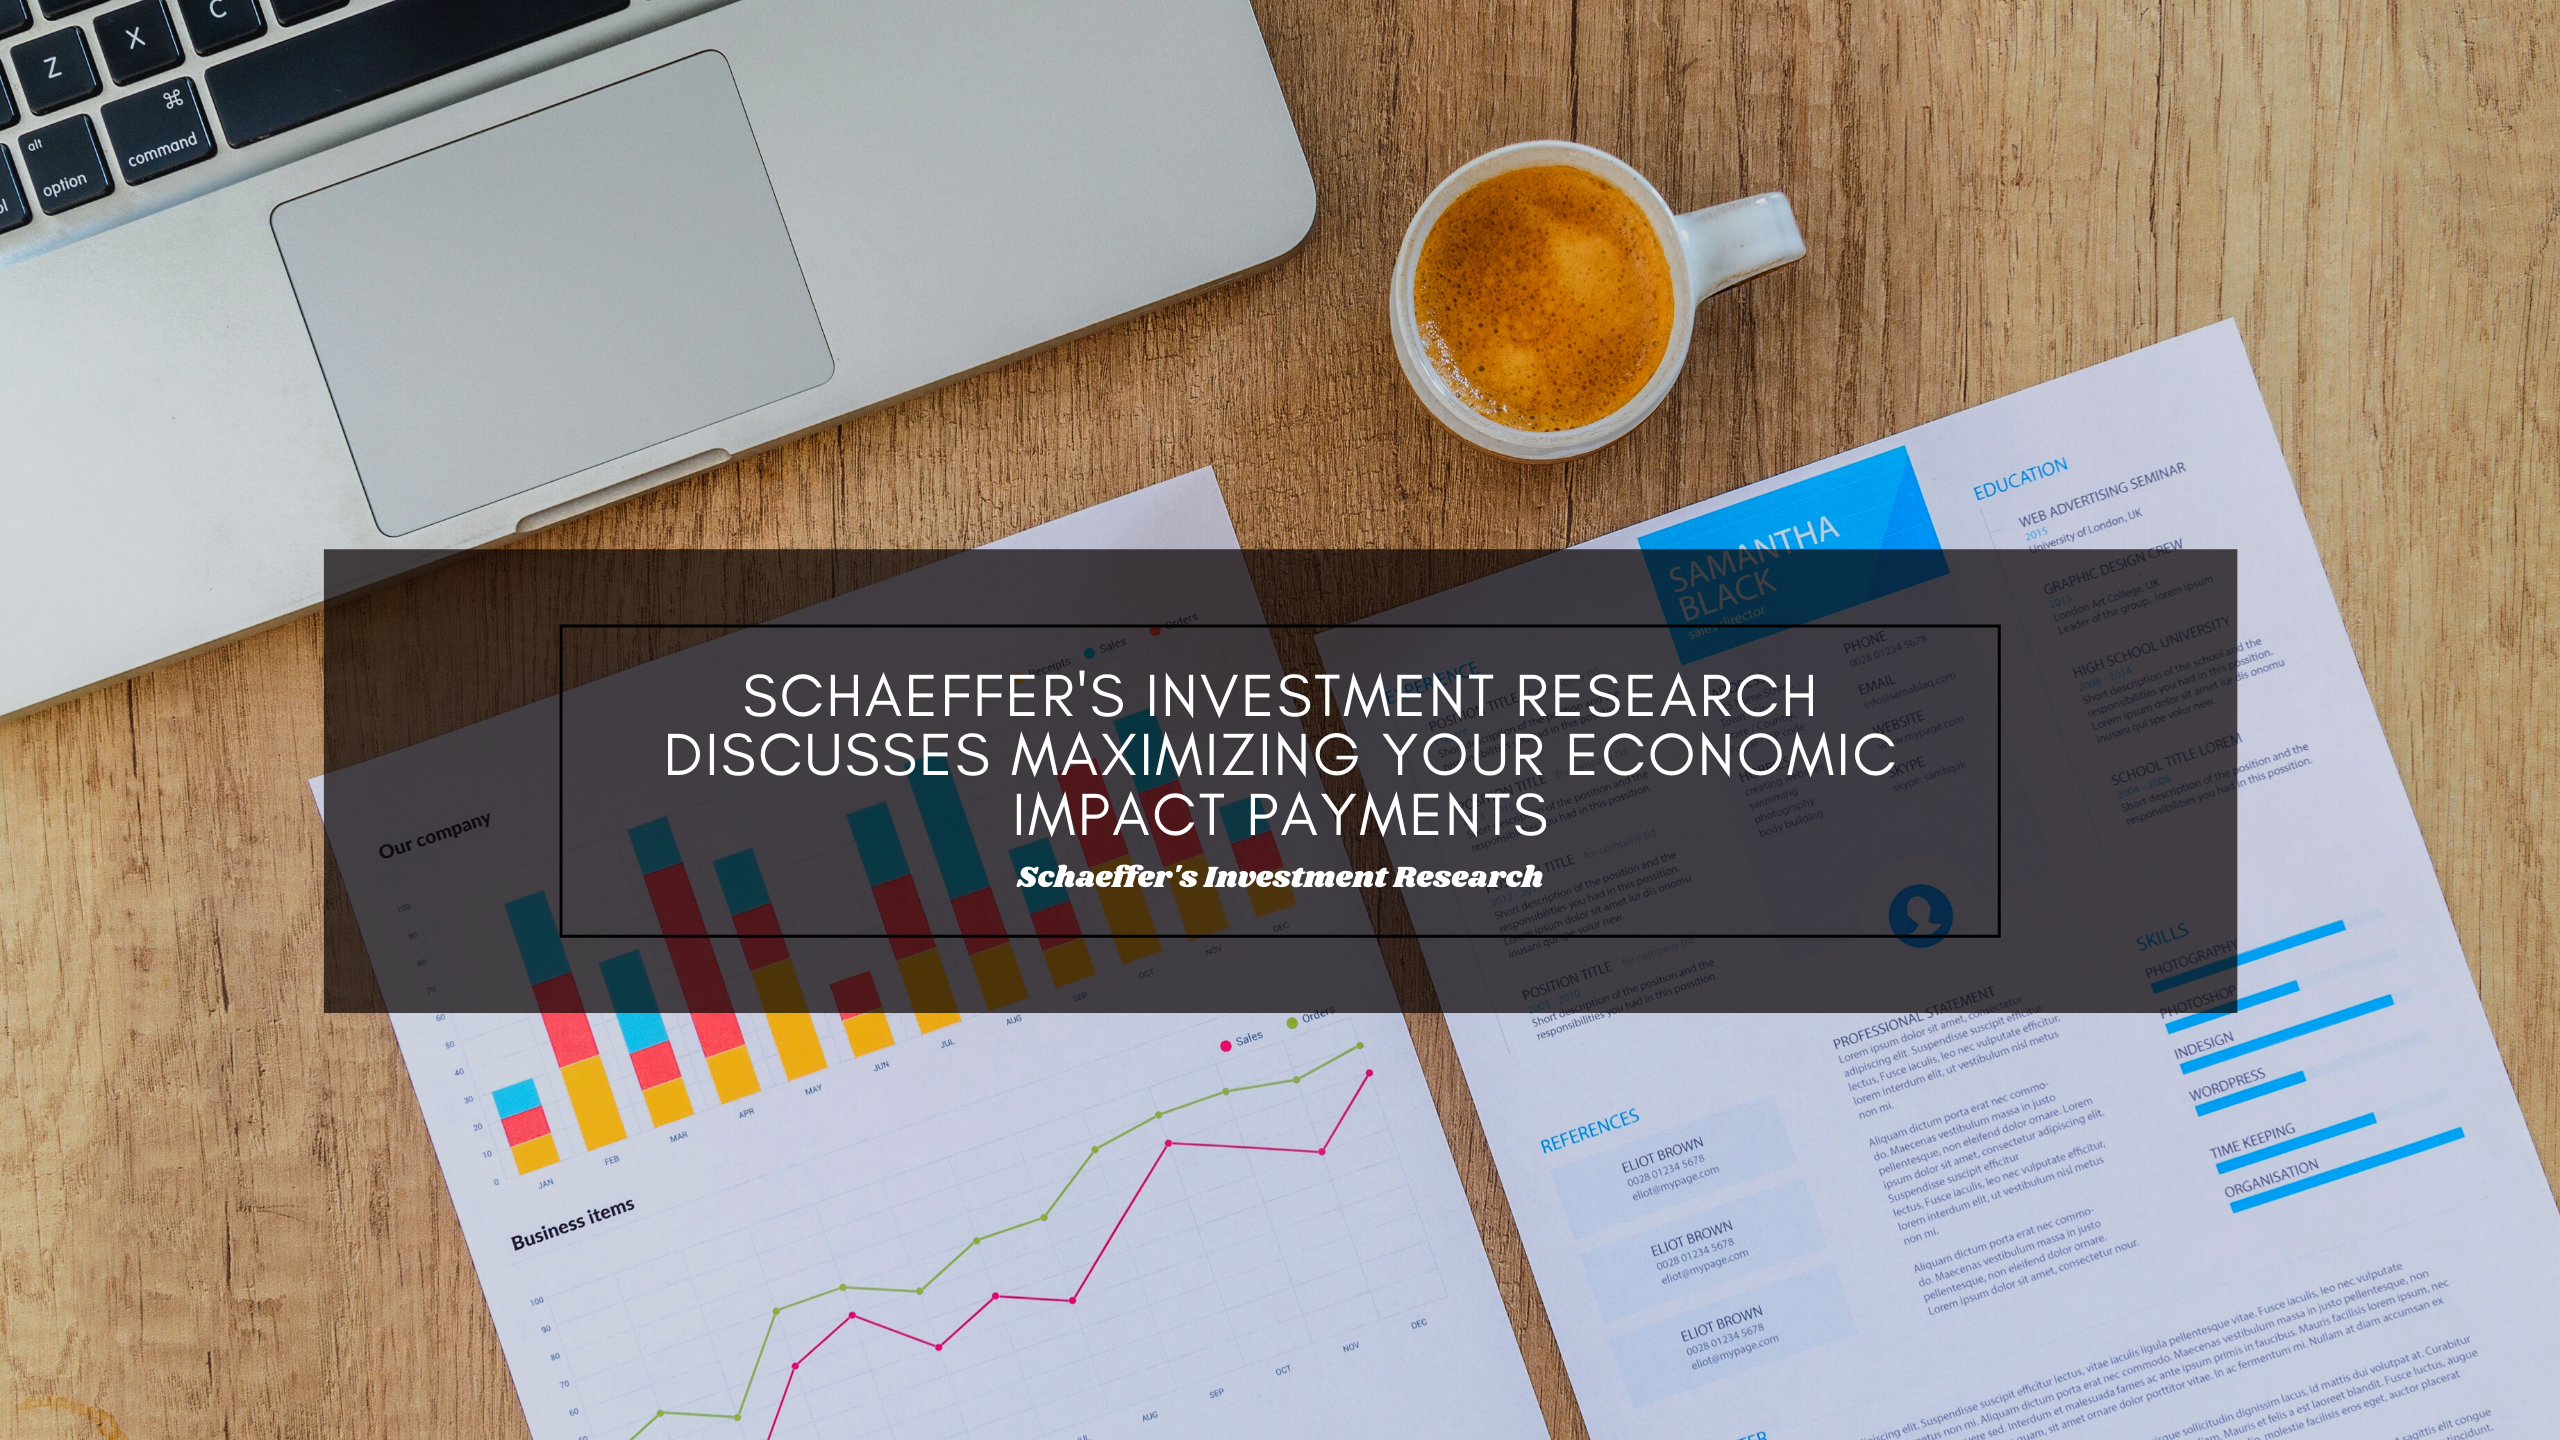 Schaeffer's Investment Research Discusses Maximizing Your Economic Impact Payments